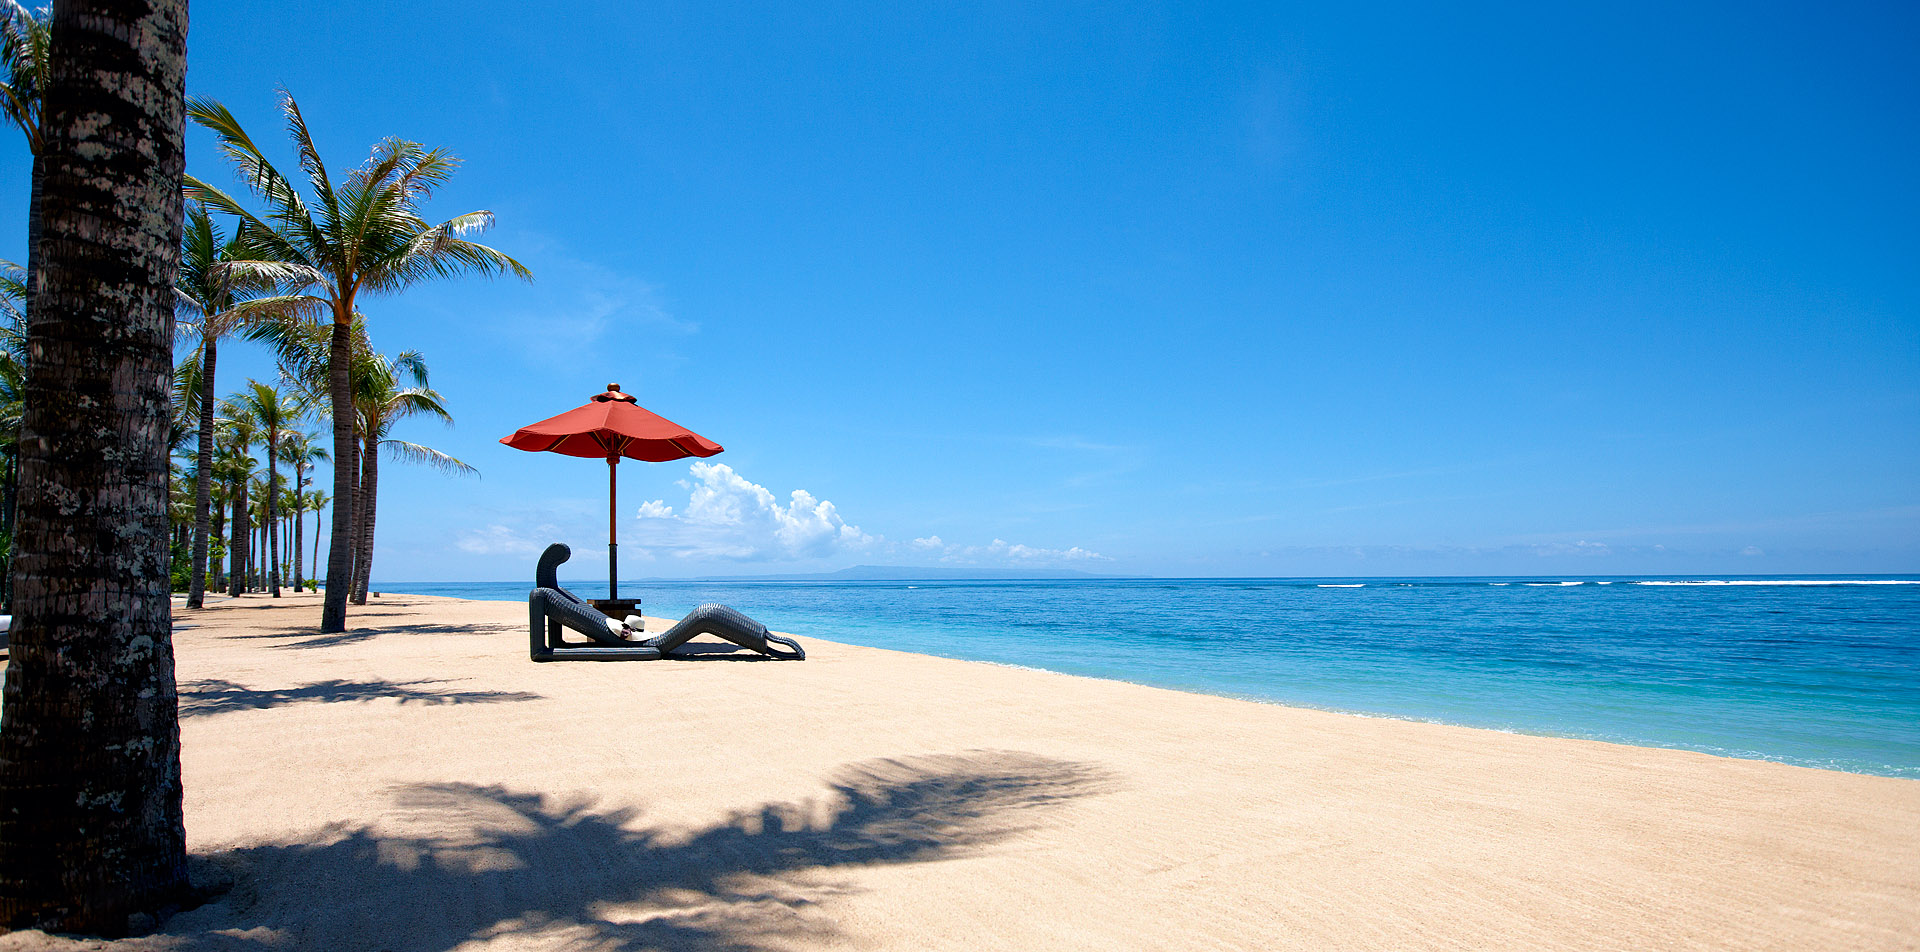 The St. Regis Bali Resort image courtesy Tripadvisor